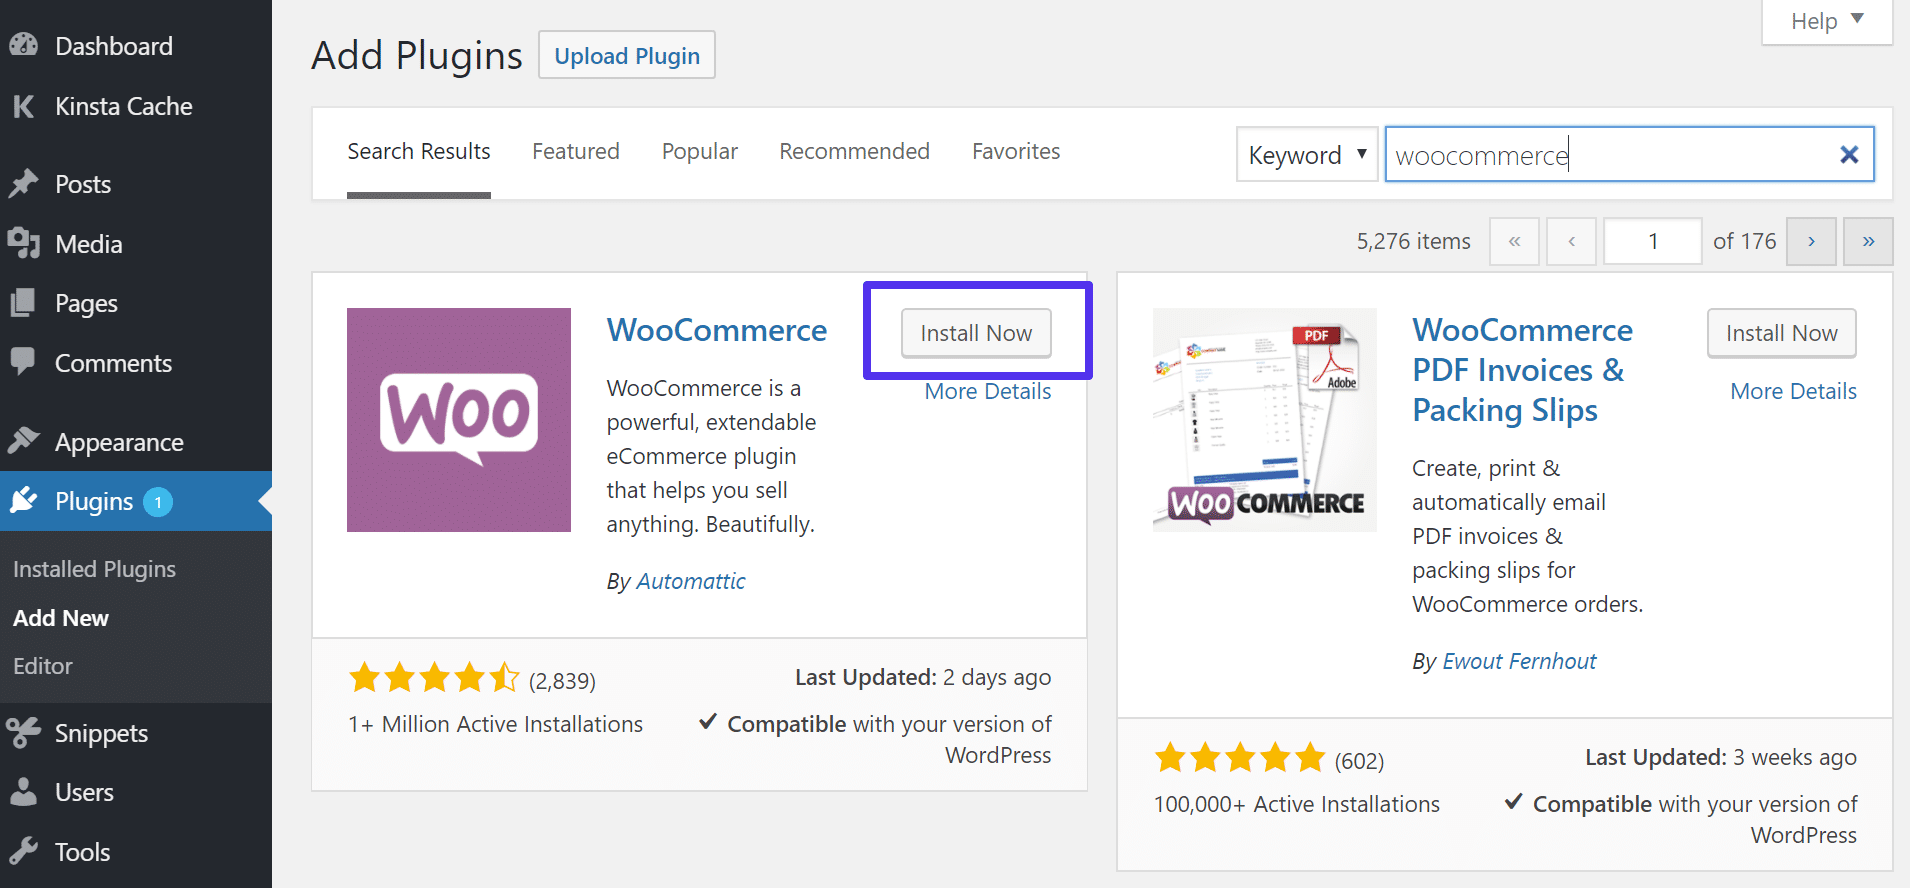 1554920019 7512 Woocommerce Installation 1